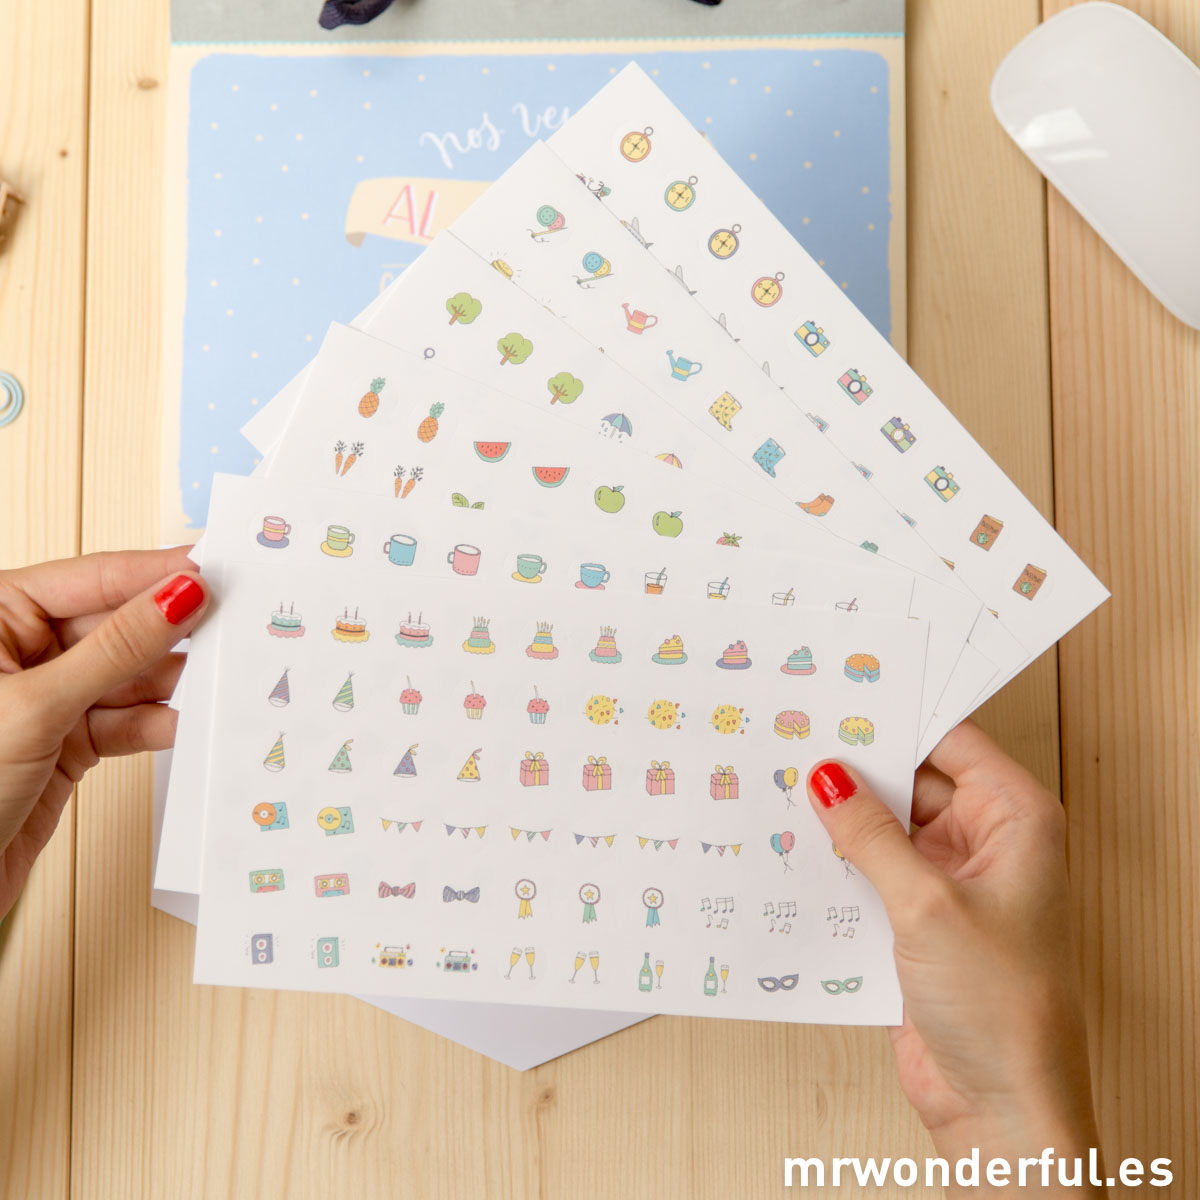 mrwonderful_WOA02929_8436547193646_Calendario-Pared-2015-2016-27